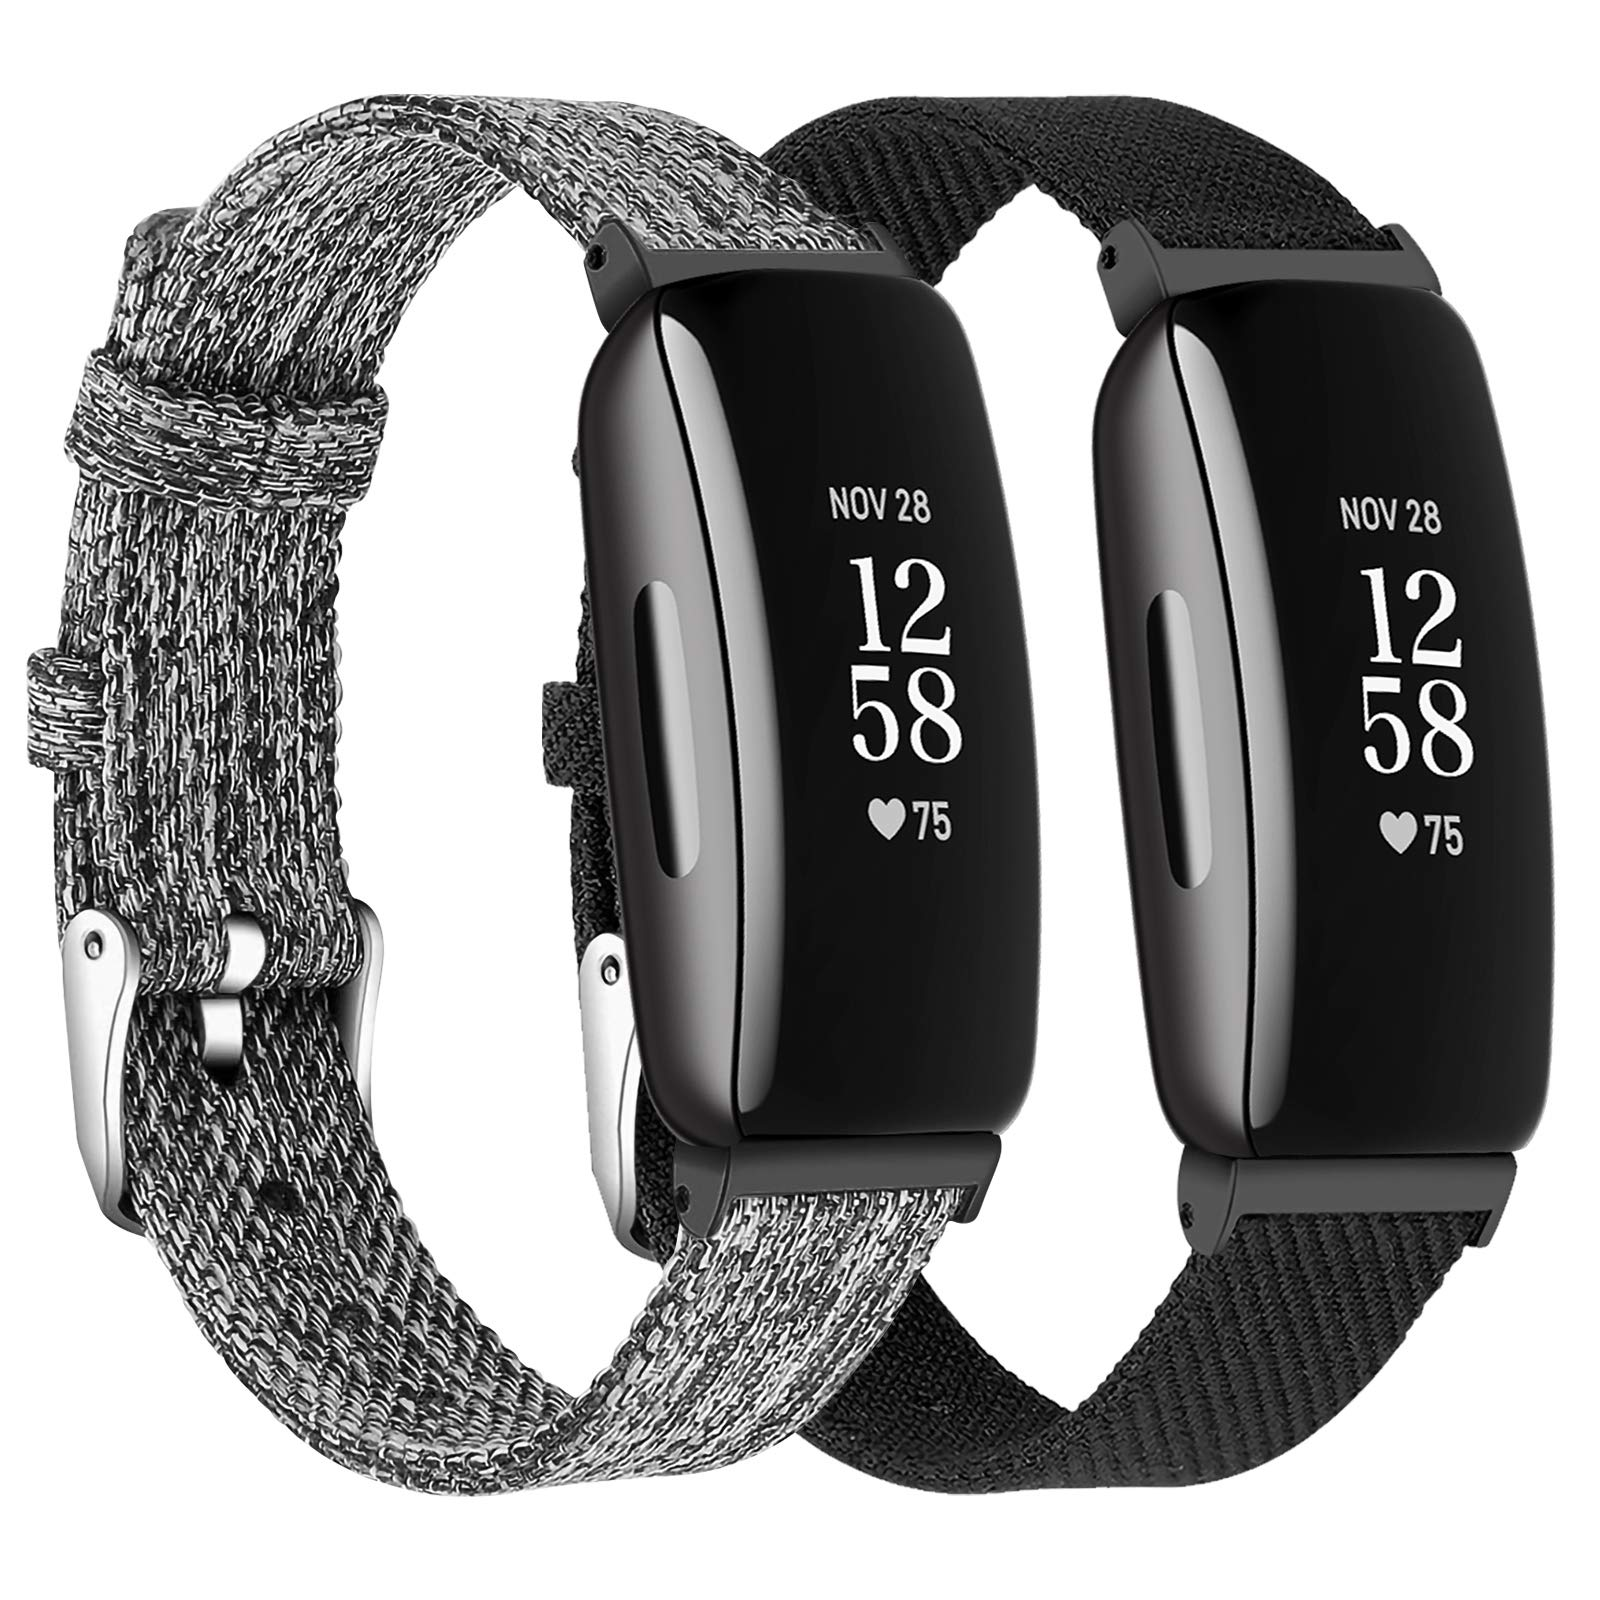 LORDSON Wristband Compatible with Fitbit Inspire 2 & Inspire HR & Inspire Watch Bands, 2-Pack Breathable Woven Fabric Quick Release Replacement Strap Wristbelt for Inspire 2 Fitness Tracker/Ace 2